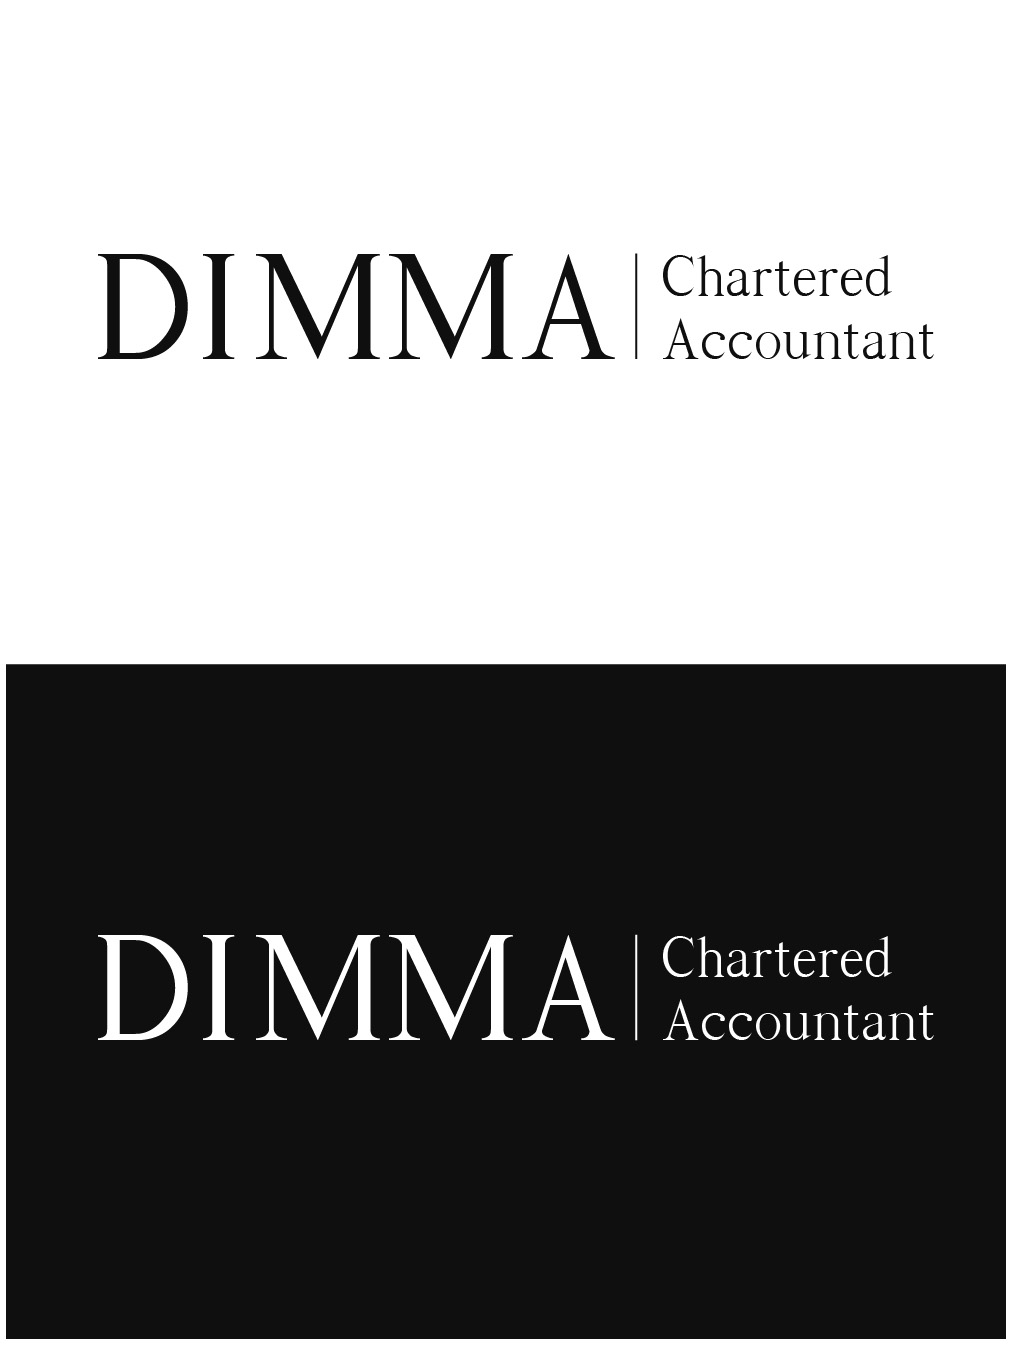 Logo Design by gkonta - Entry No. 32 in the Logo Design Contest Creative Logo Design for Dimma Chartered Accountant.